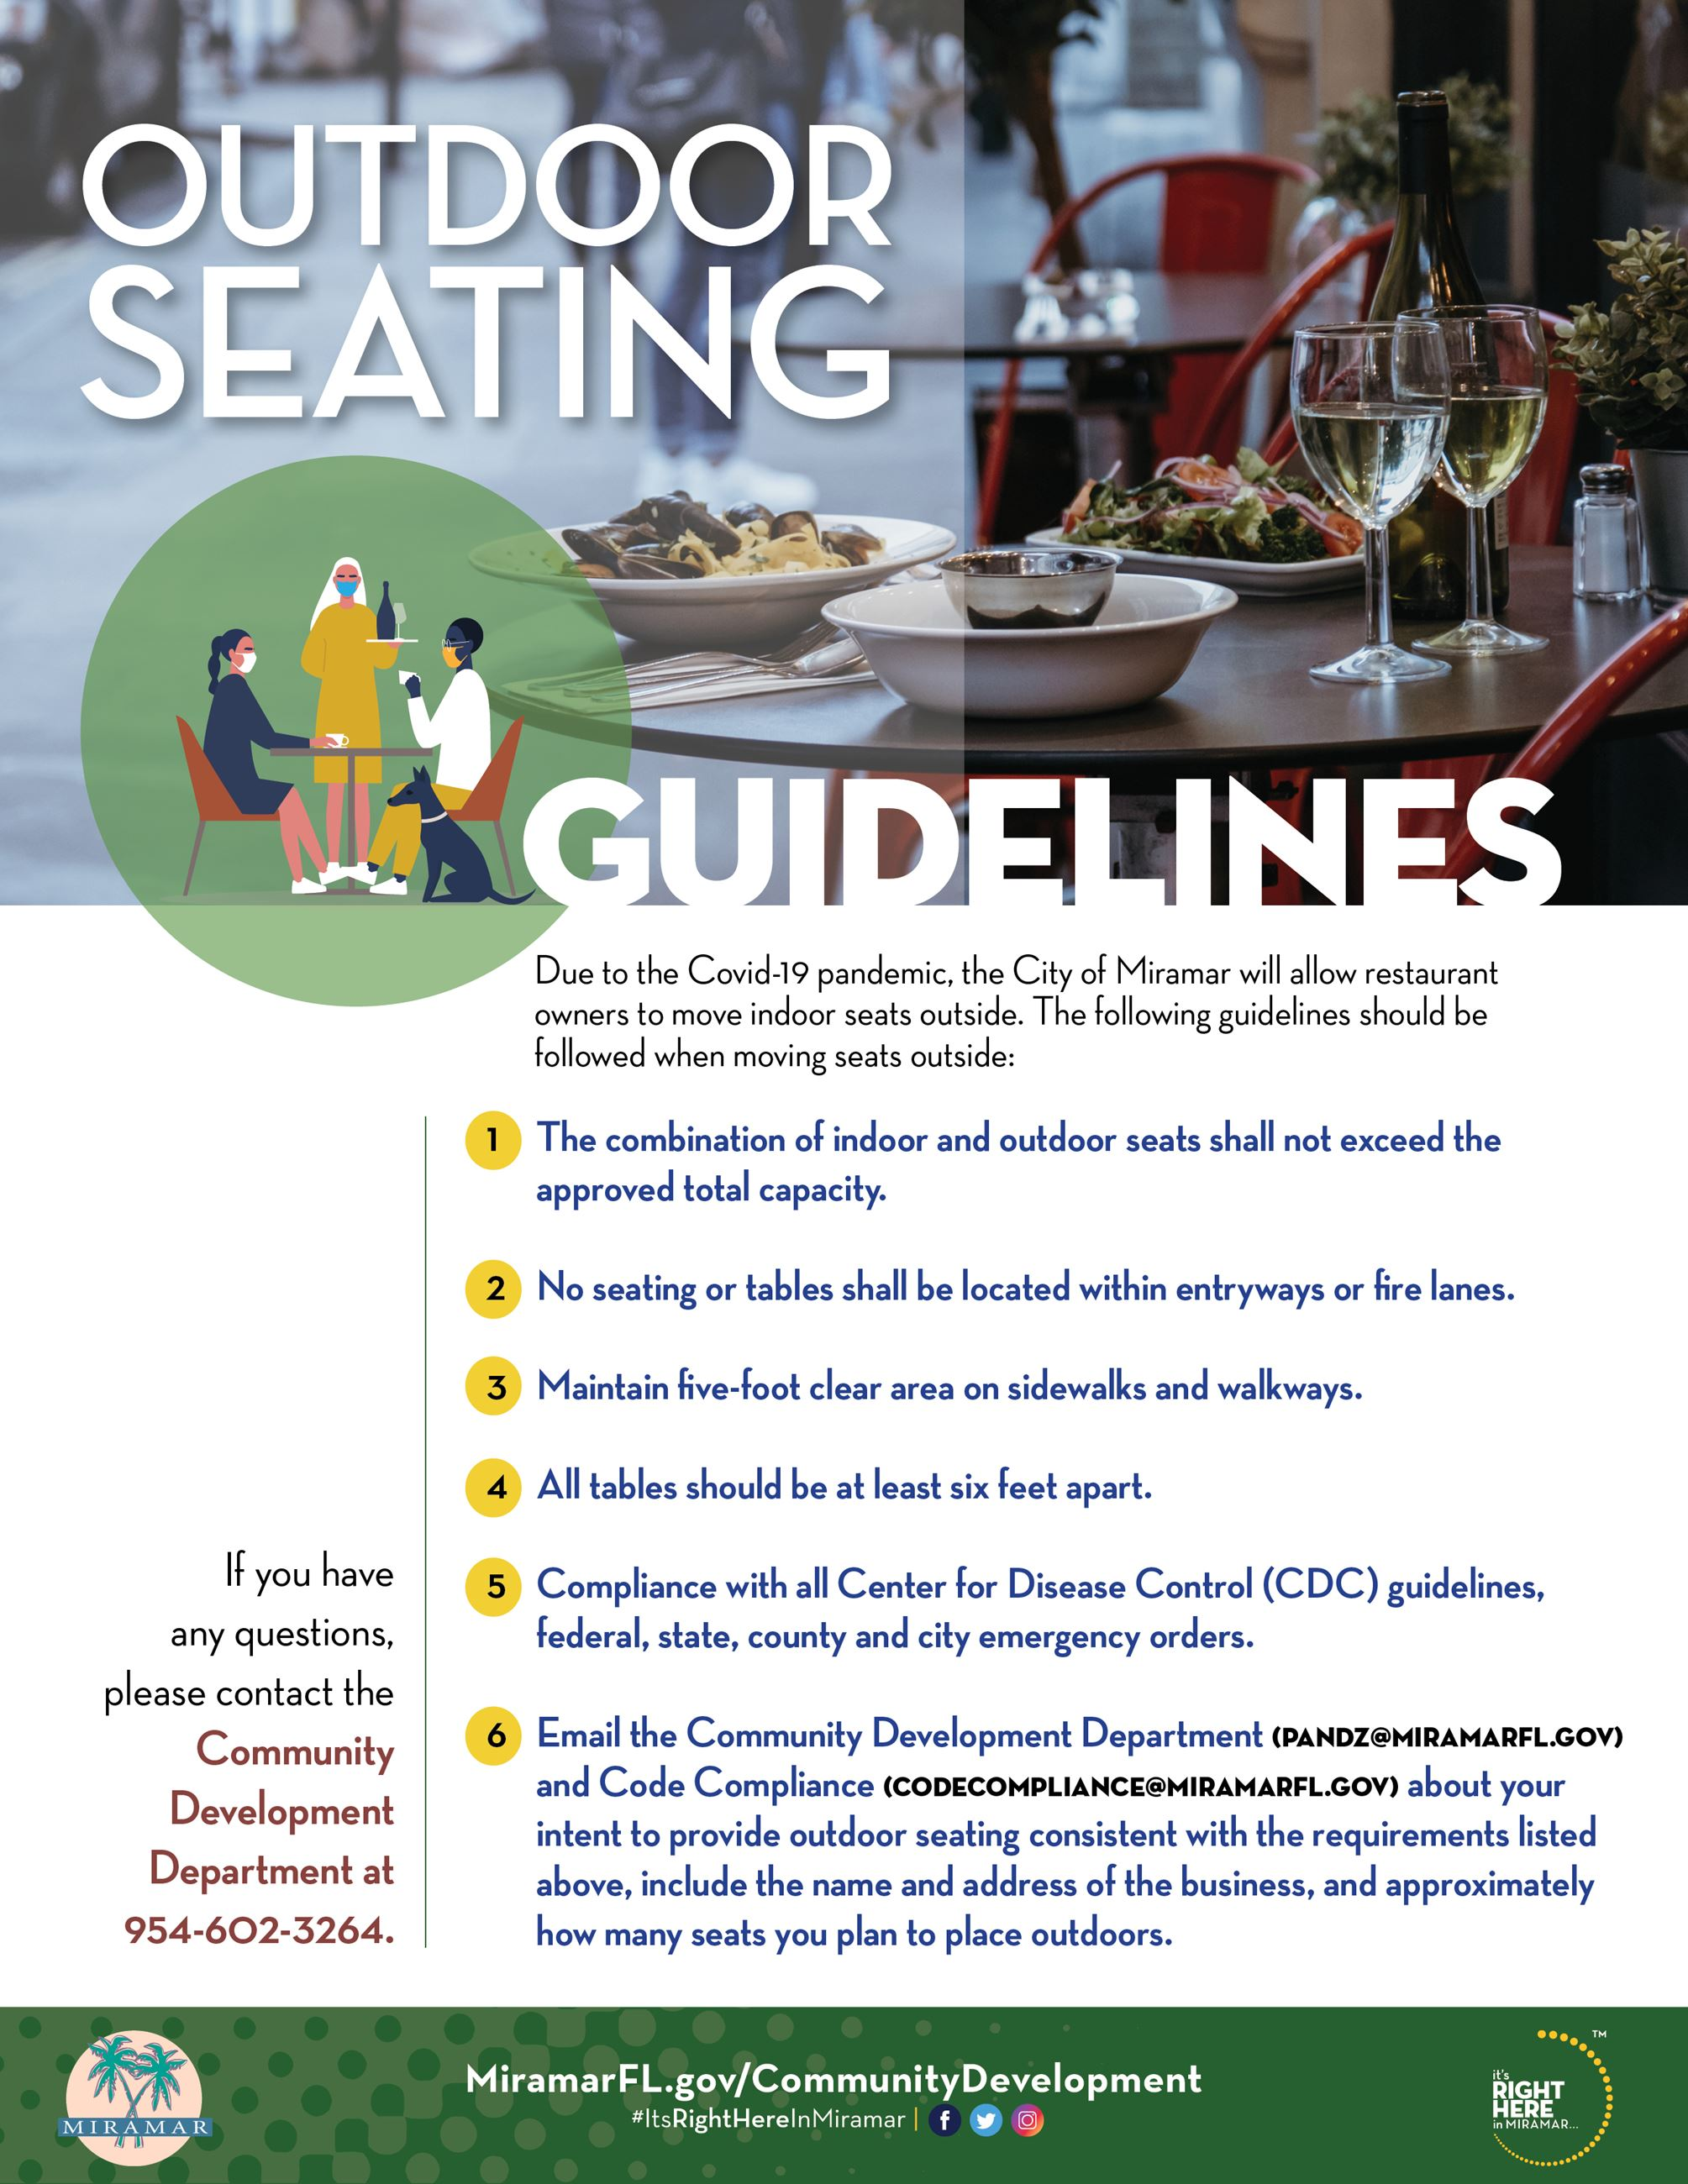 Out Door Seating Guidelines - Covid-19